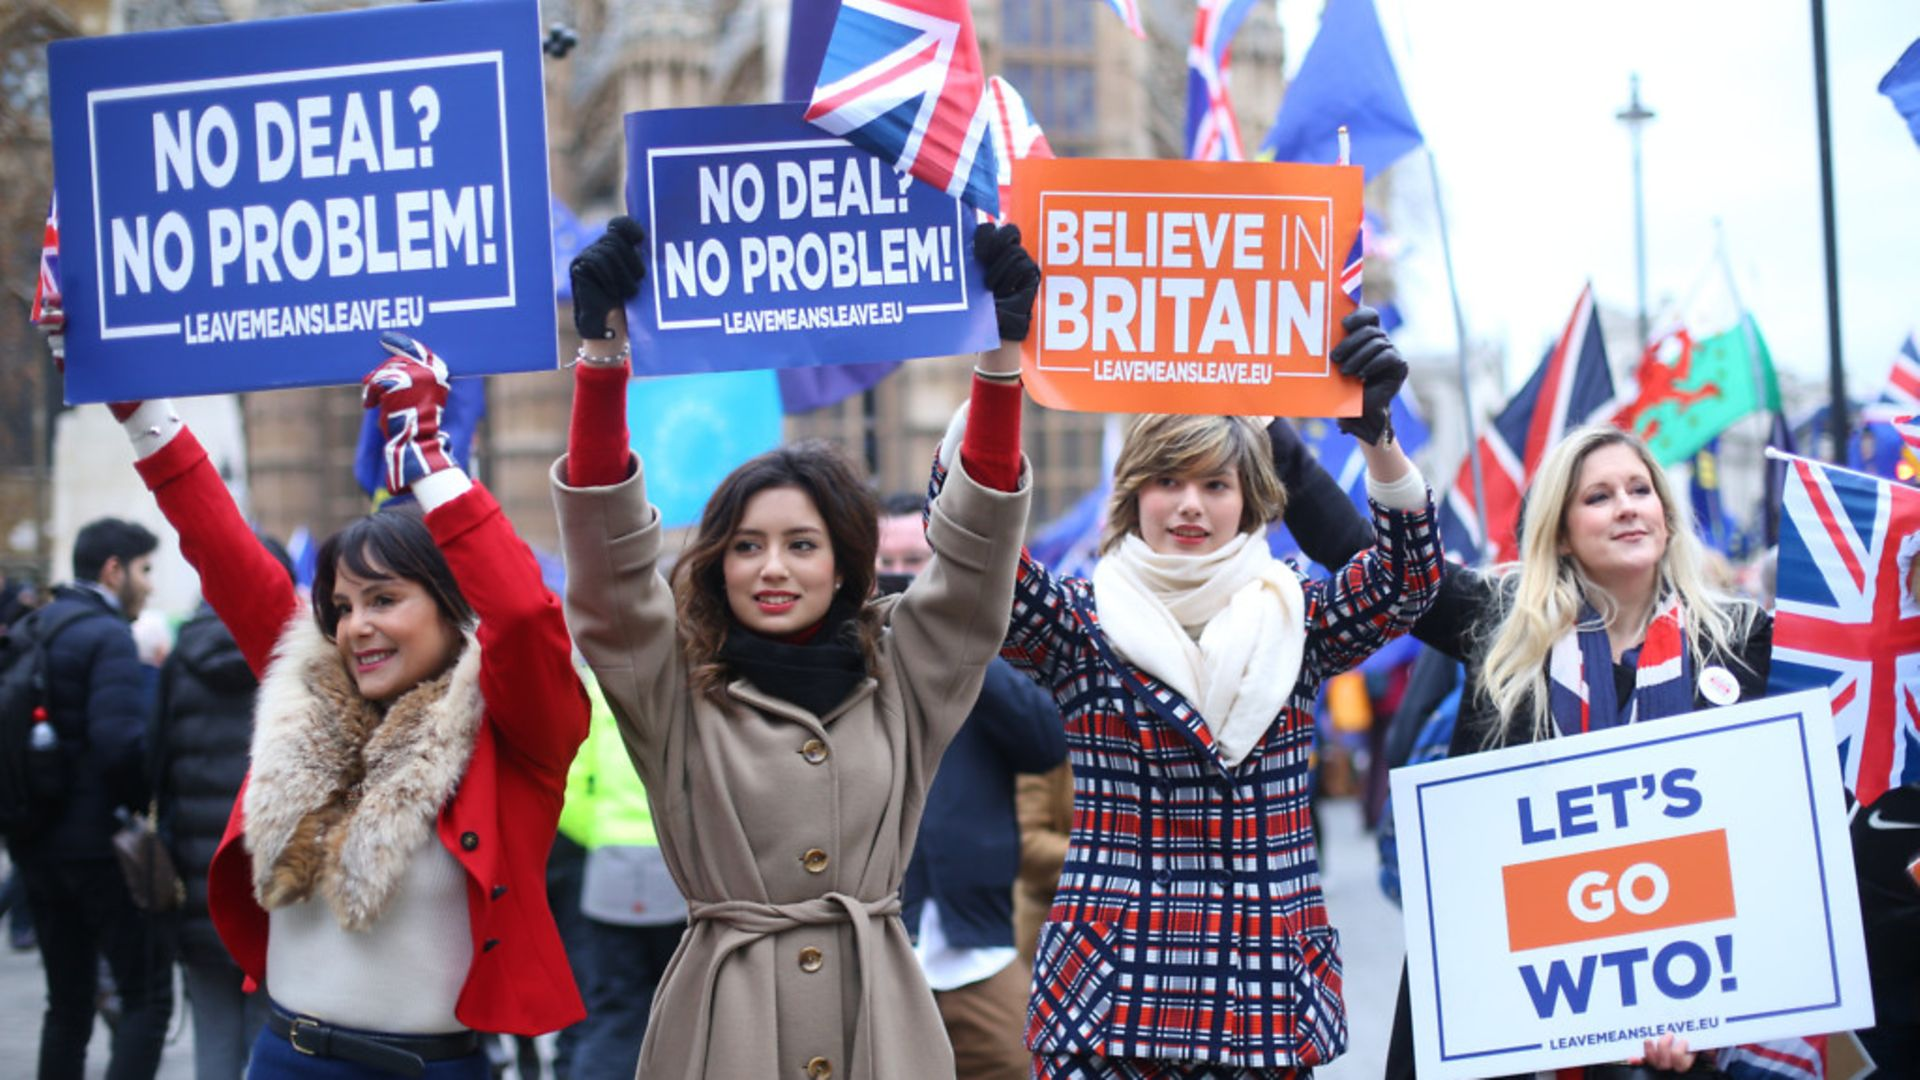 Pro-Brexit supporters advocate a no-deal Brexit outside the Houses of Parliament - Credit: PA Wire/PA Images